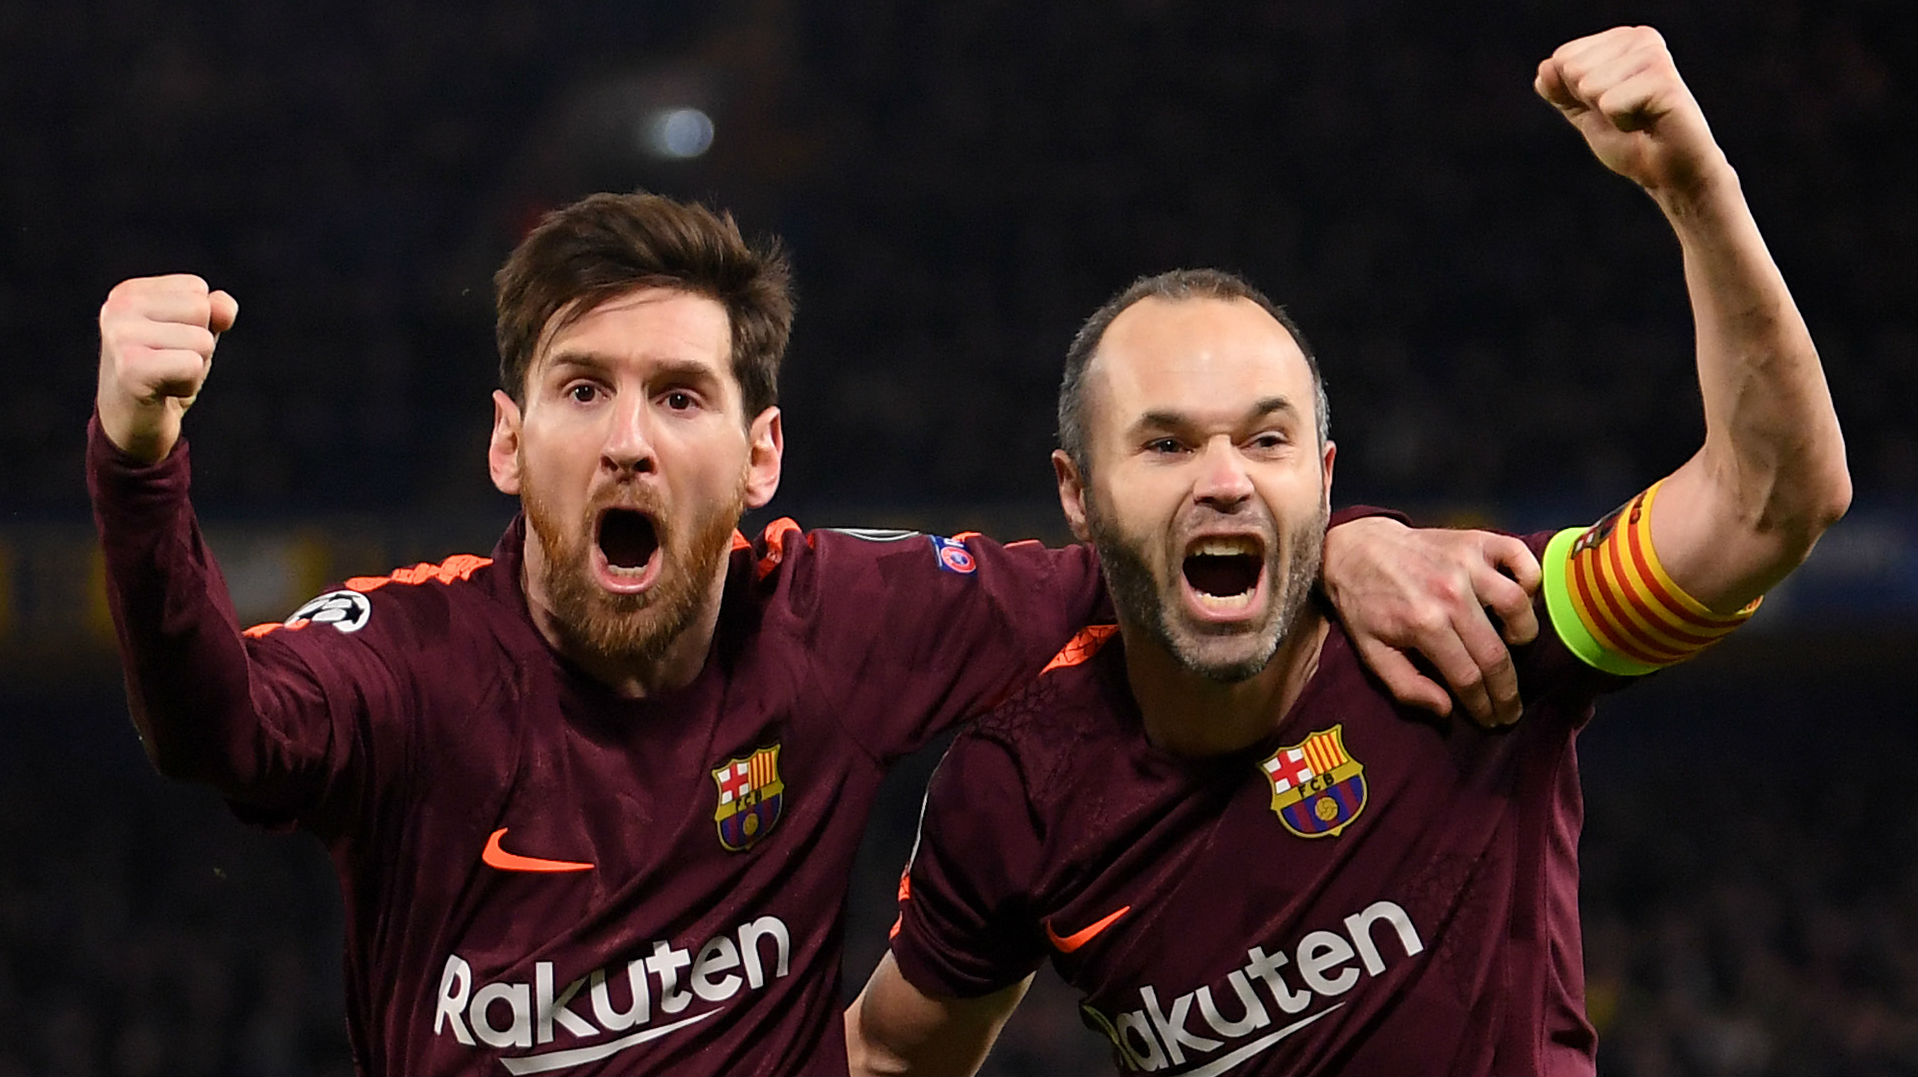 Iniesta the closest talent to Messi, says former Barcelona coach ...